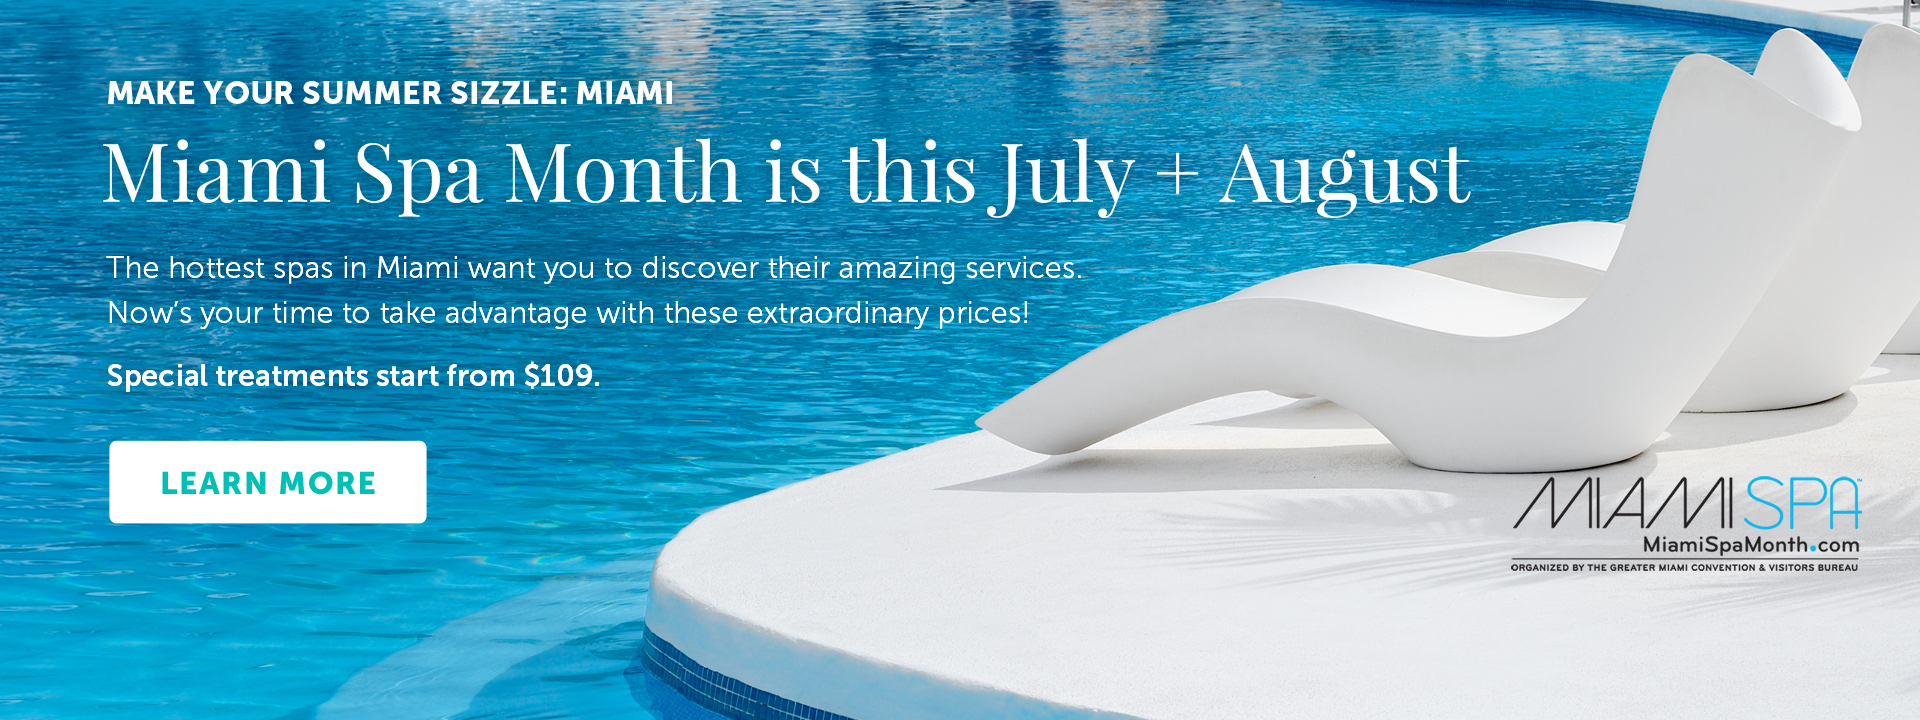 Make Your Summer Sizzle: Miami. The hottest spas in Miami want you to discover their amazing services - Now's your time to take advantage with these extraordinary prices! Special treatments start from $109.